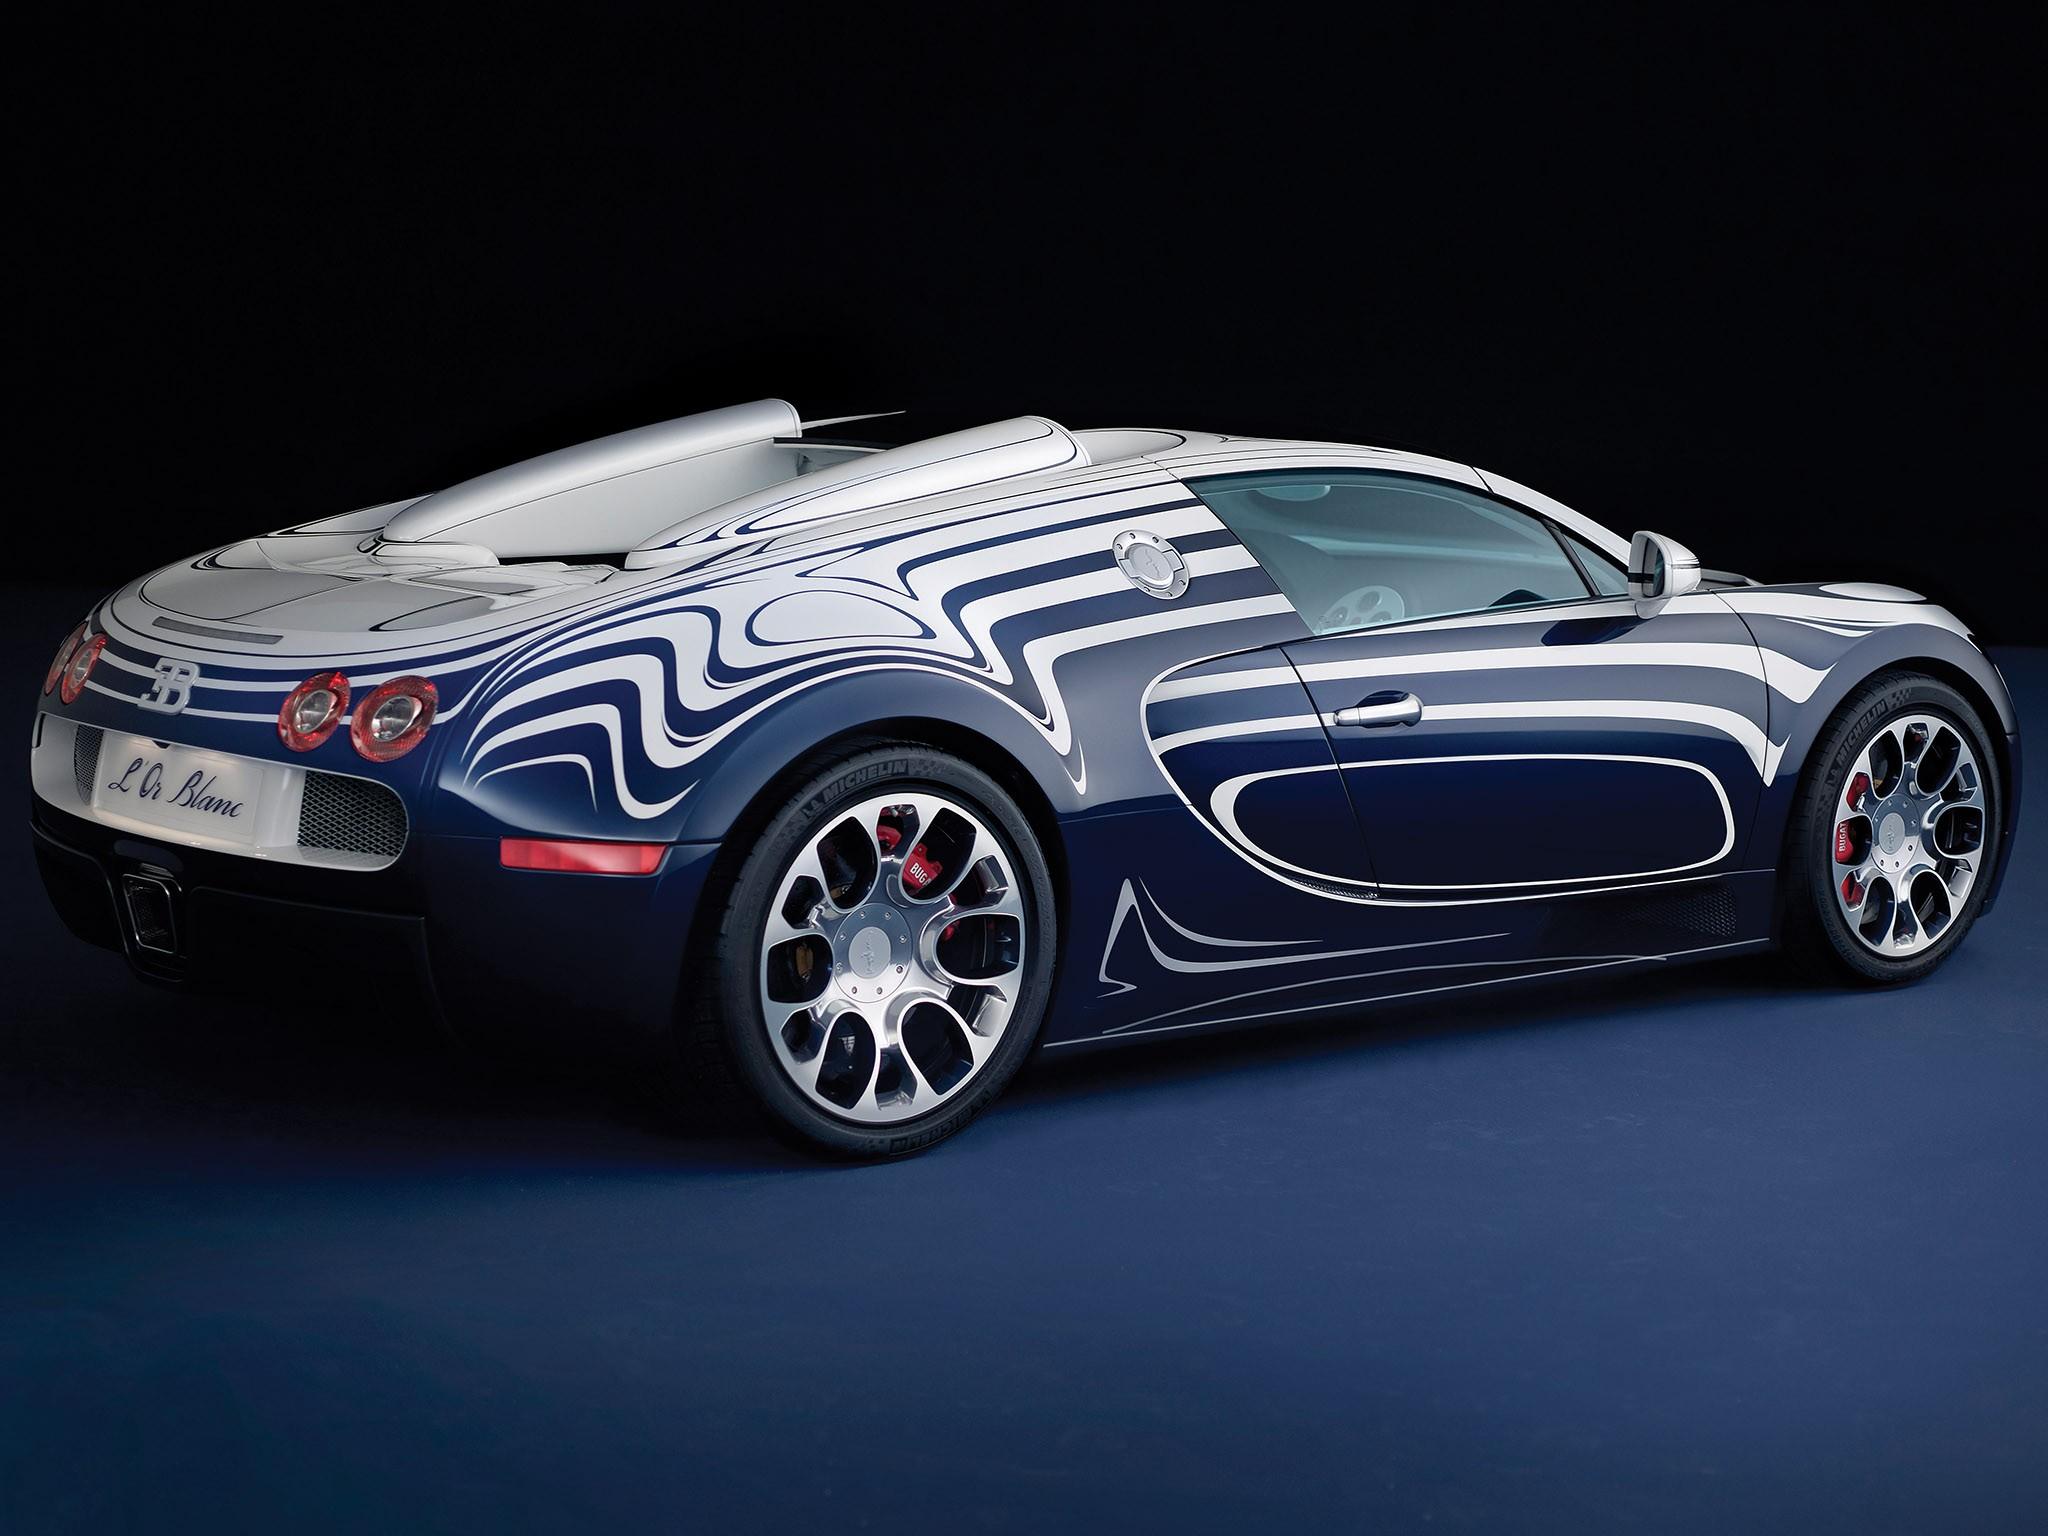 Bugatti Veyron Grand Sport OR Blanc (2011)